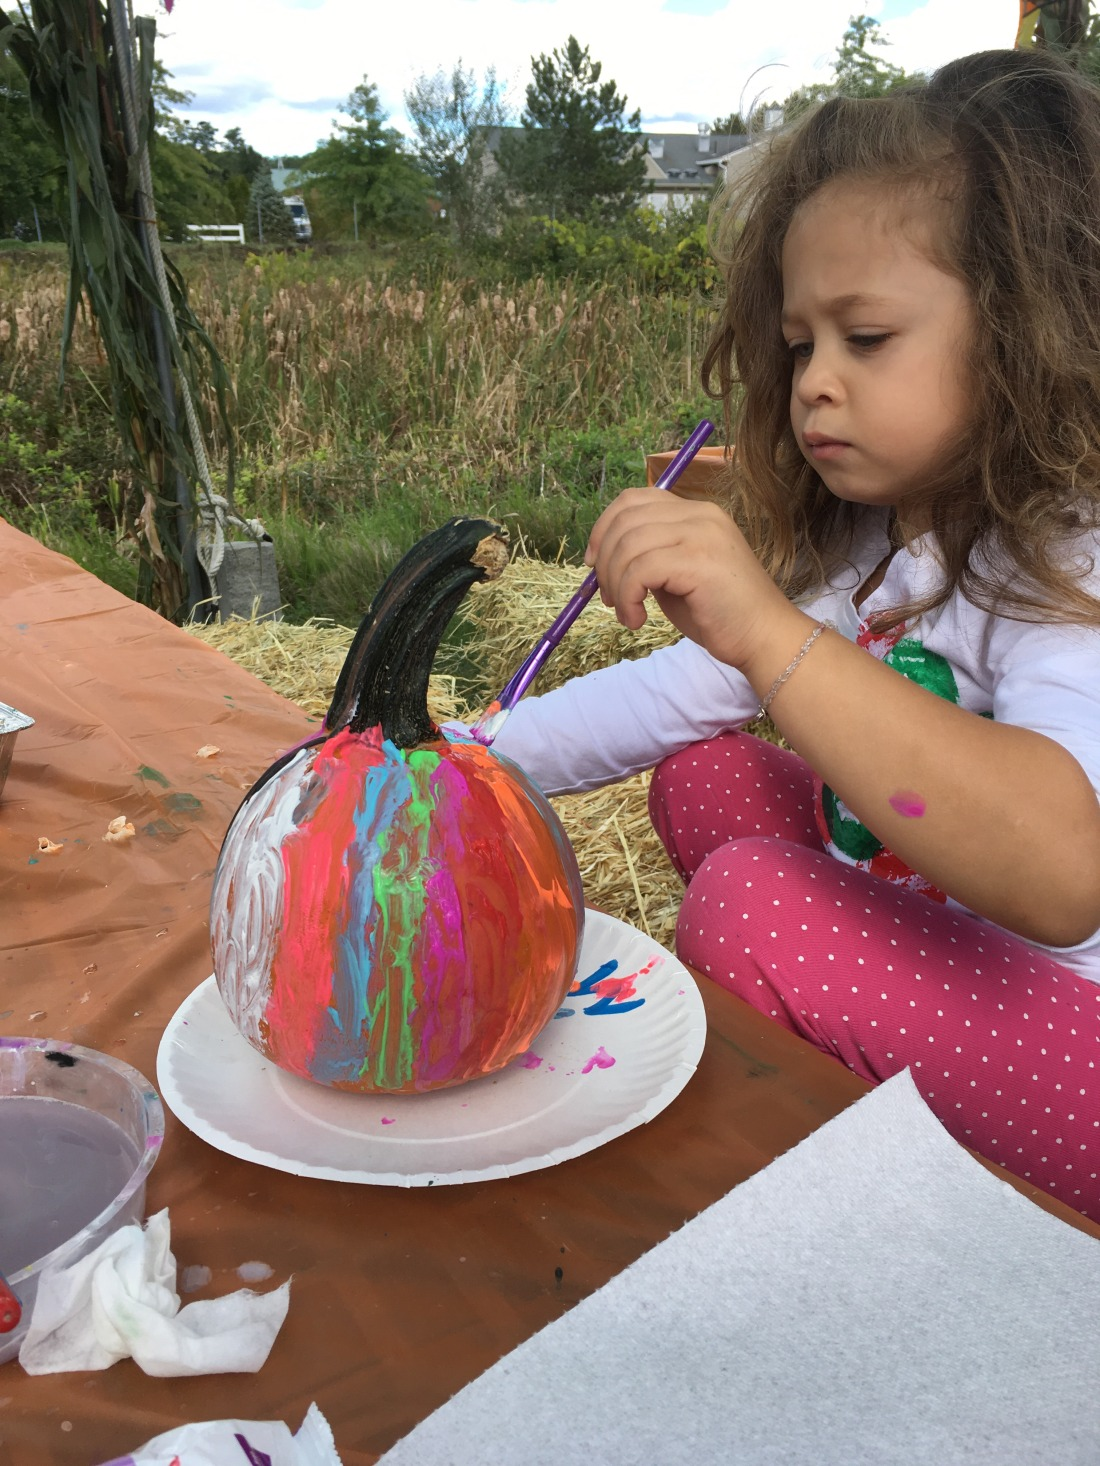 A little girl concentrates while she paints a pumpkin